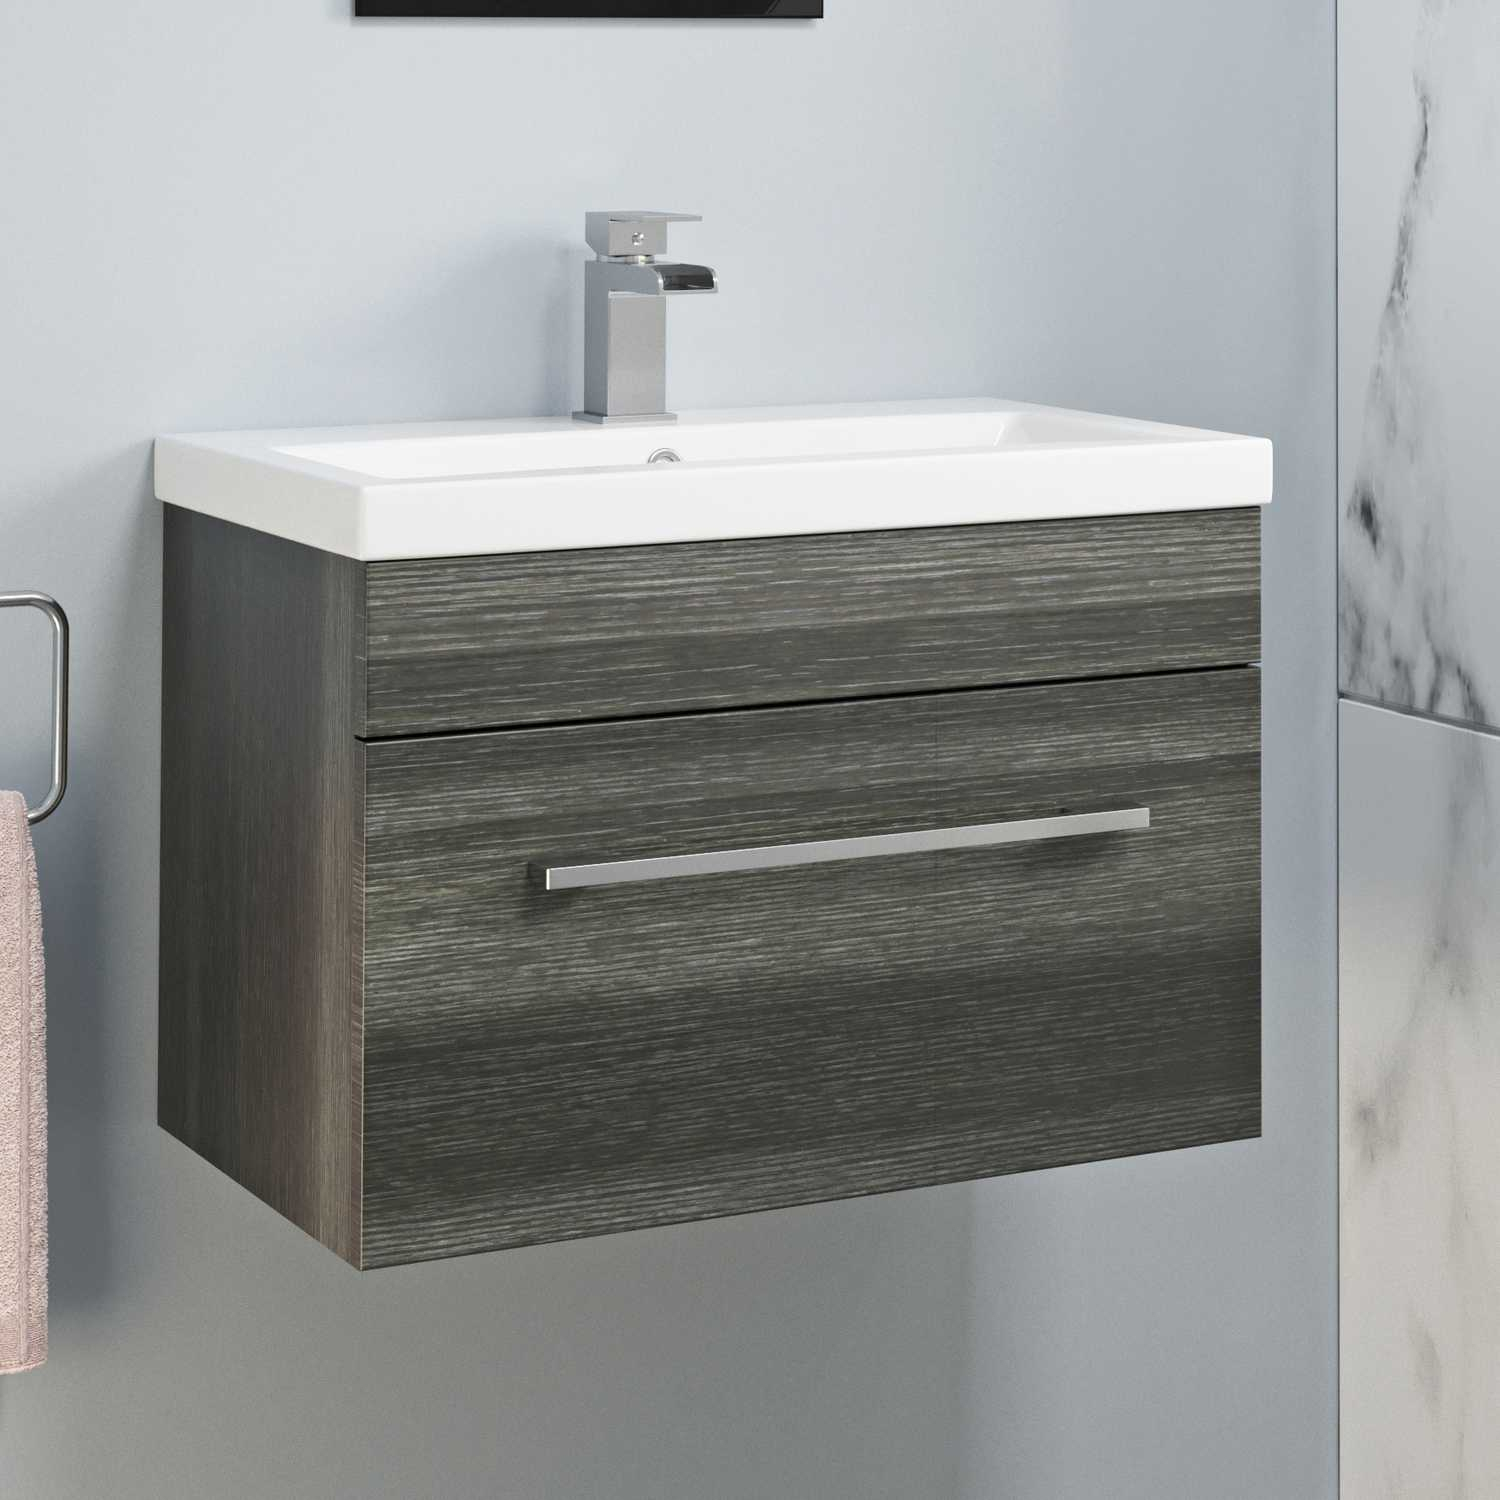 600mm Bathroom Wall Hung Vanity Unit Basin Storage Cabinet Furniture inside proportions 1500 X 1500